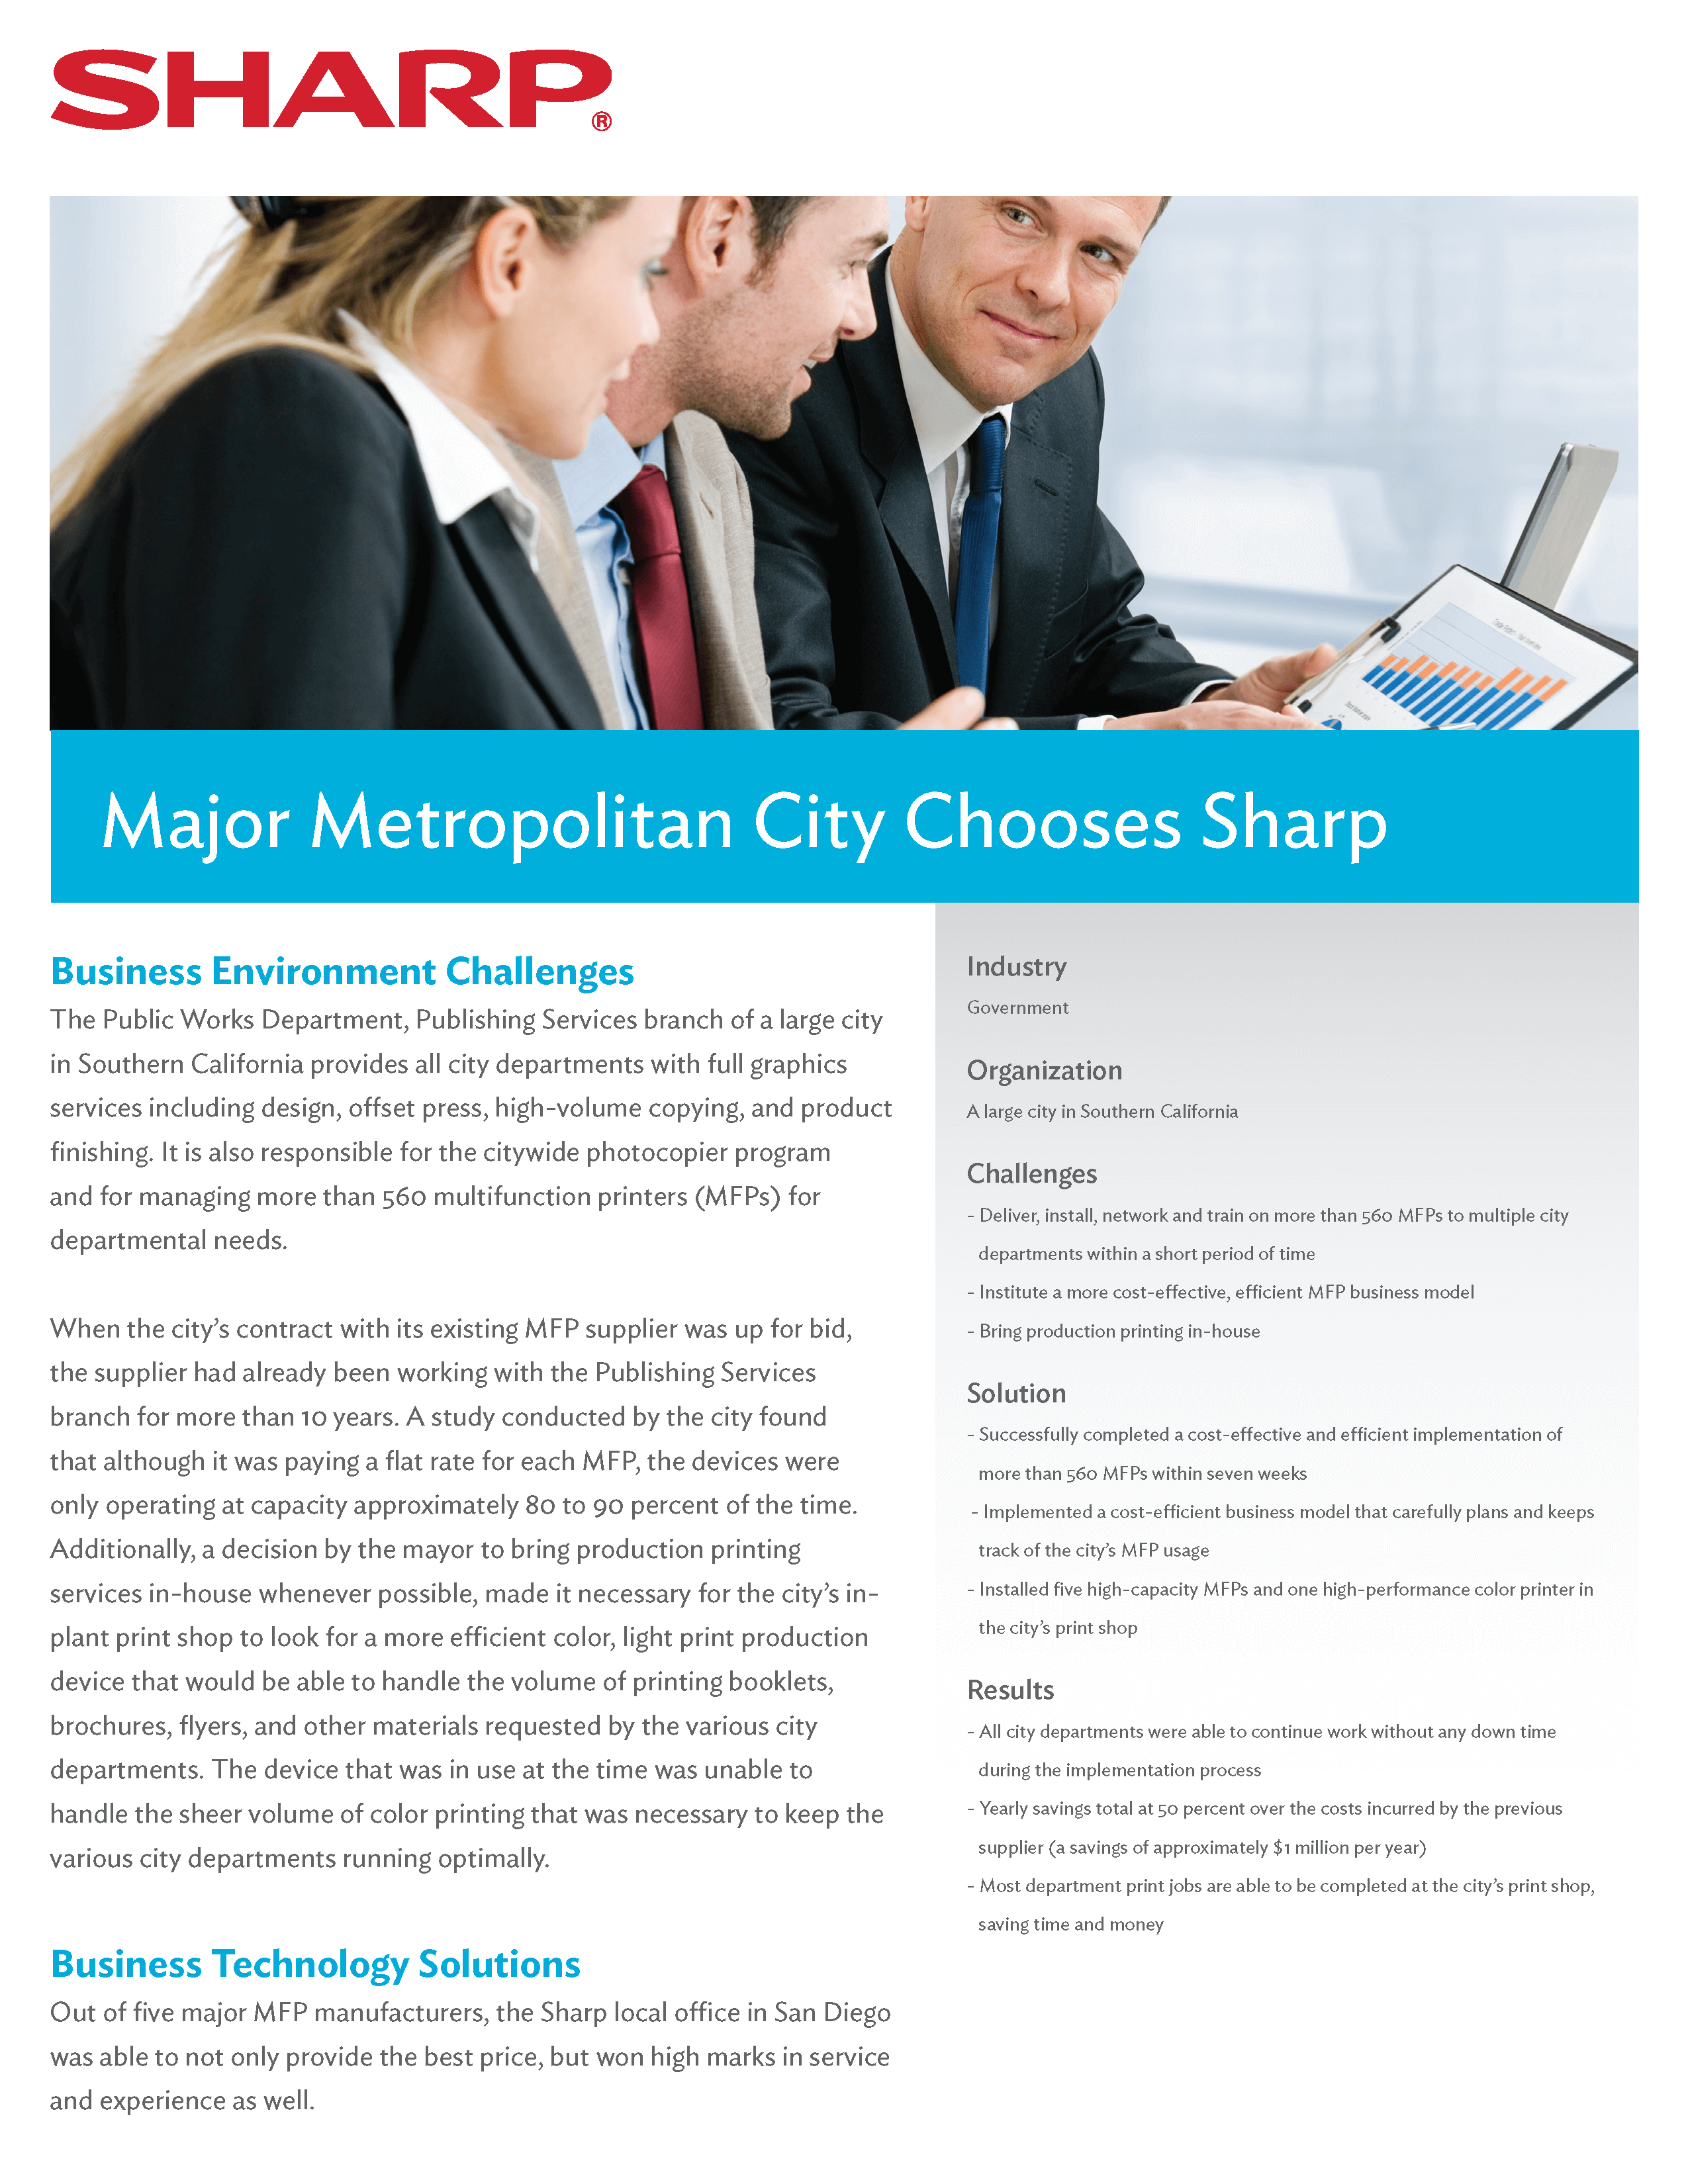 Metropolitan city saves 50% over the cost incurred by the previous supplier